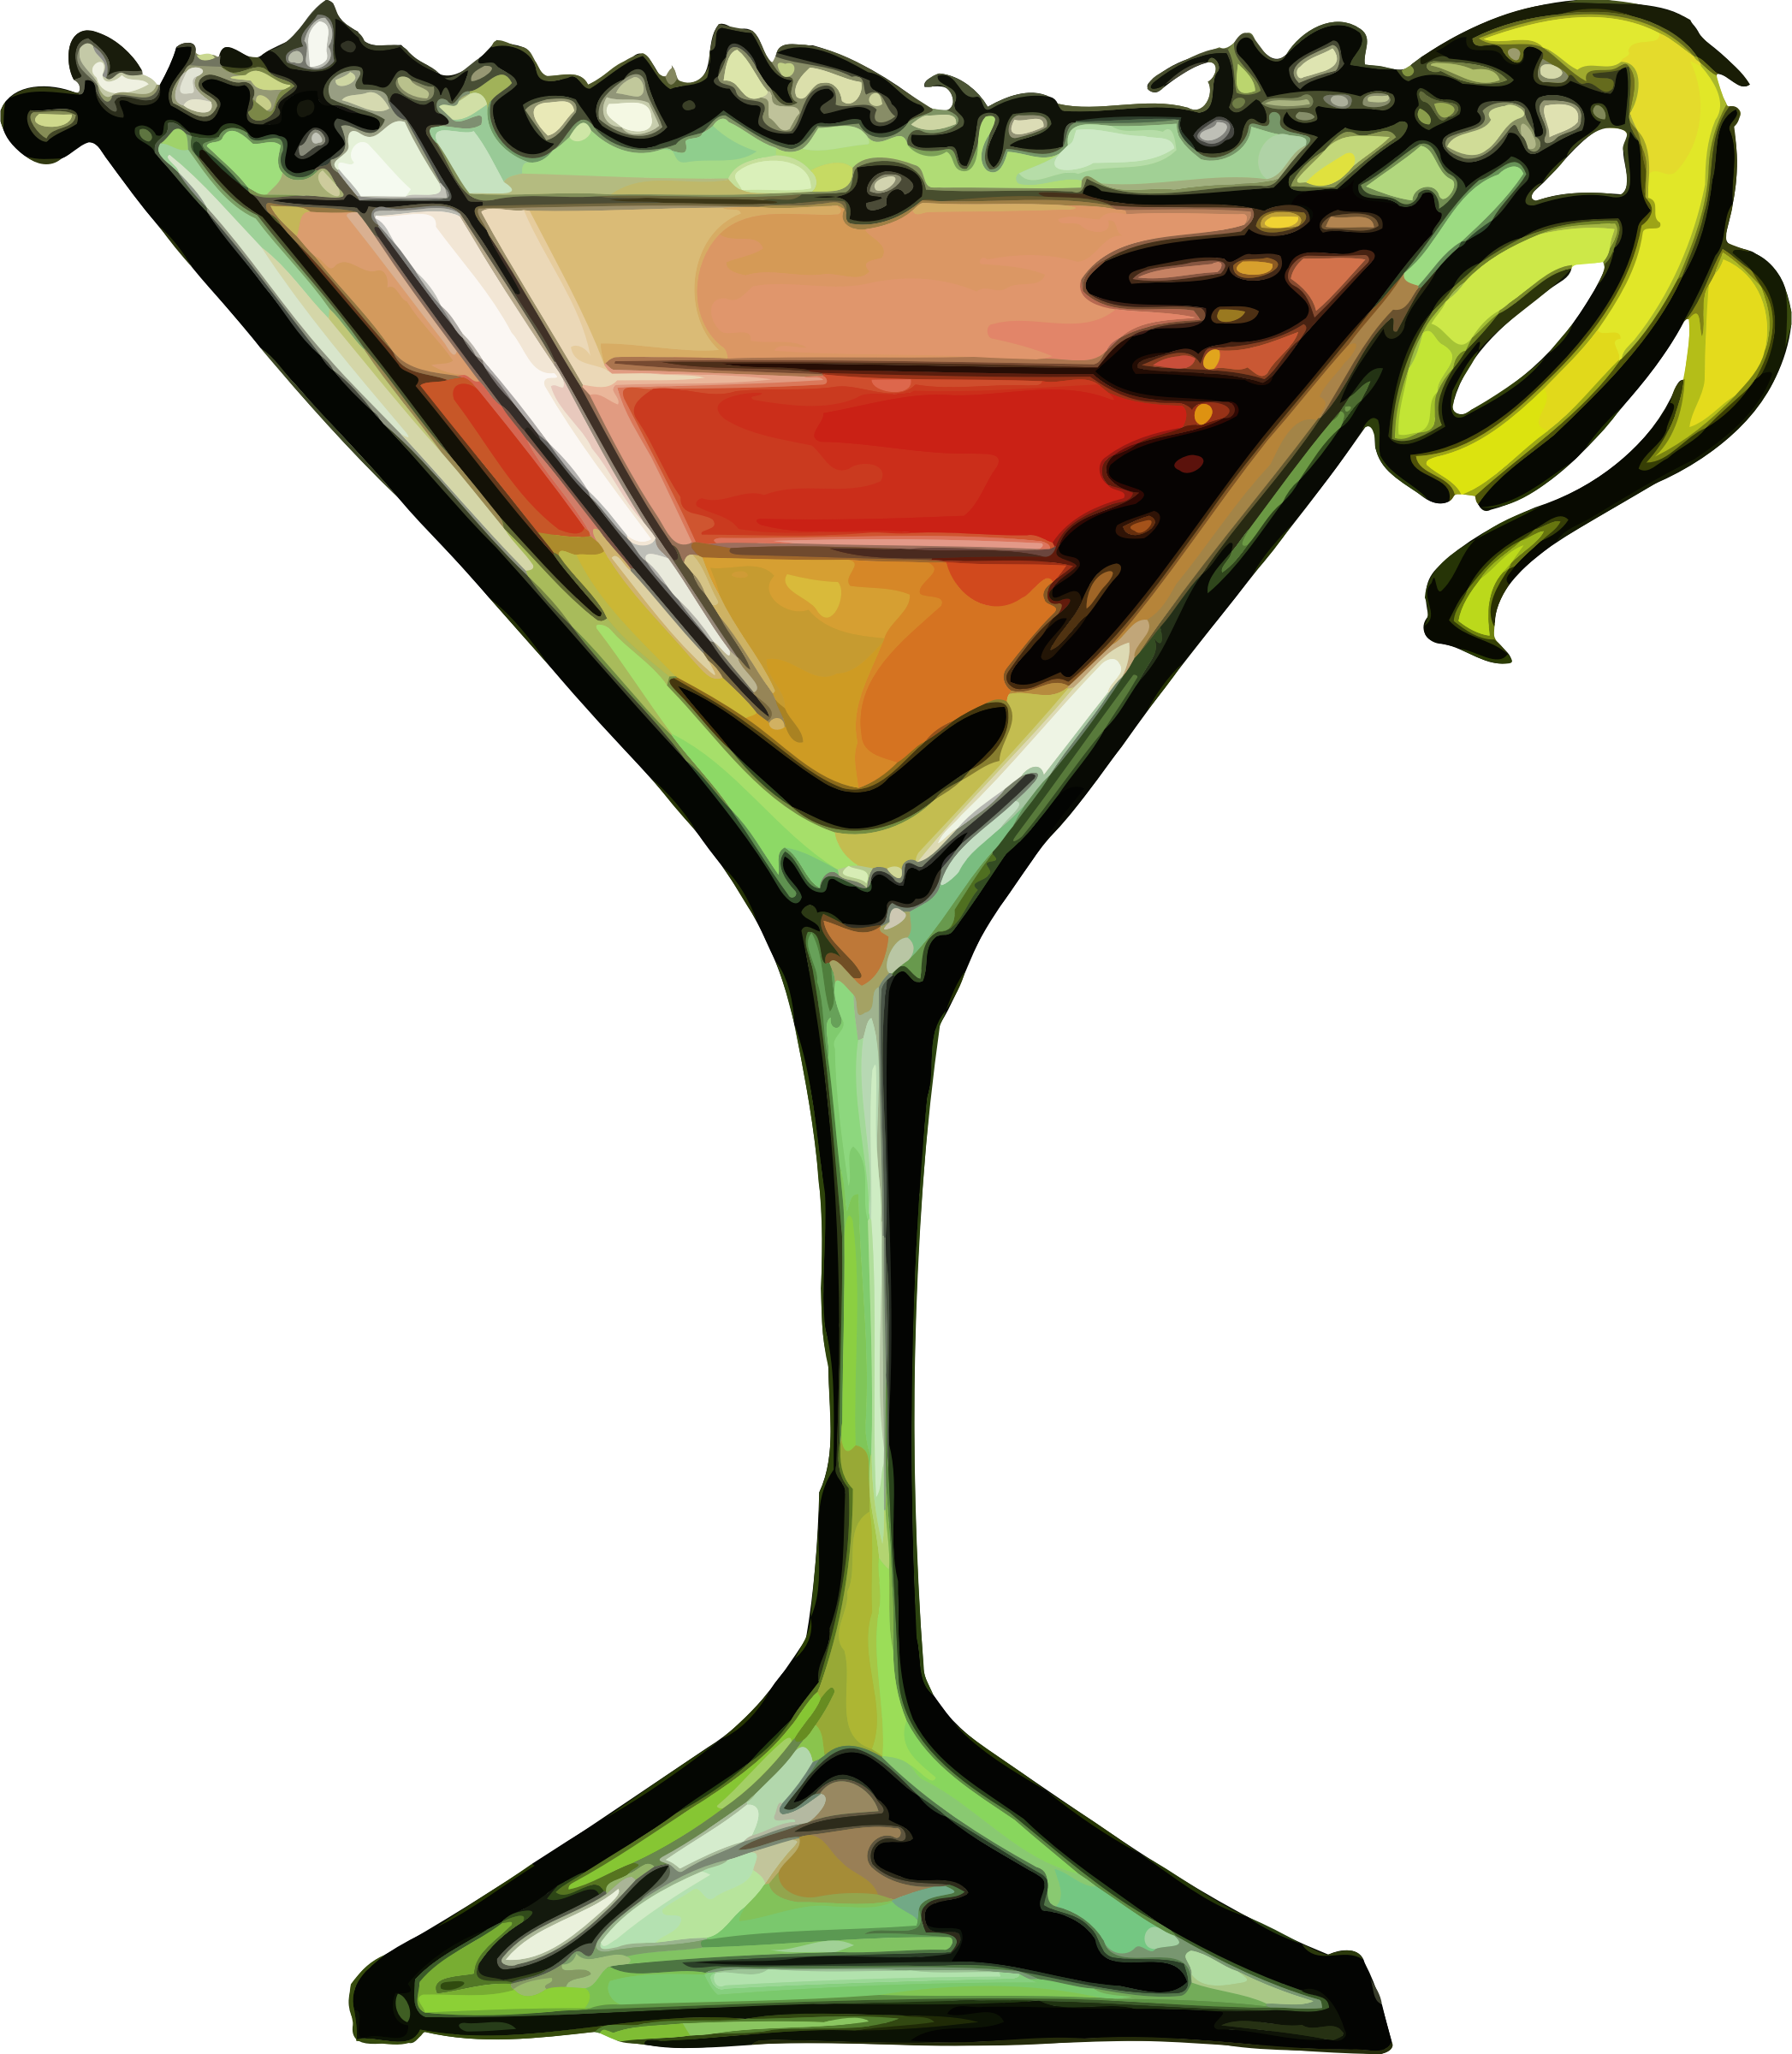 Martini clipart cosmo drink, Martini cosmo drink Transparent.